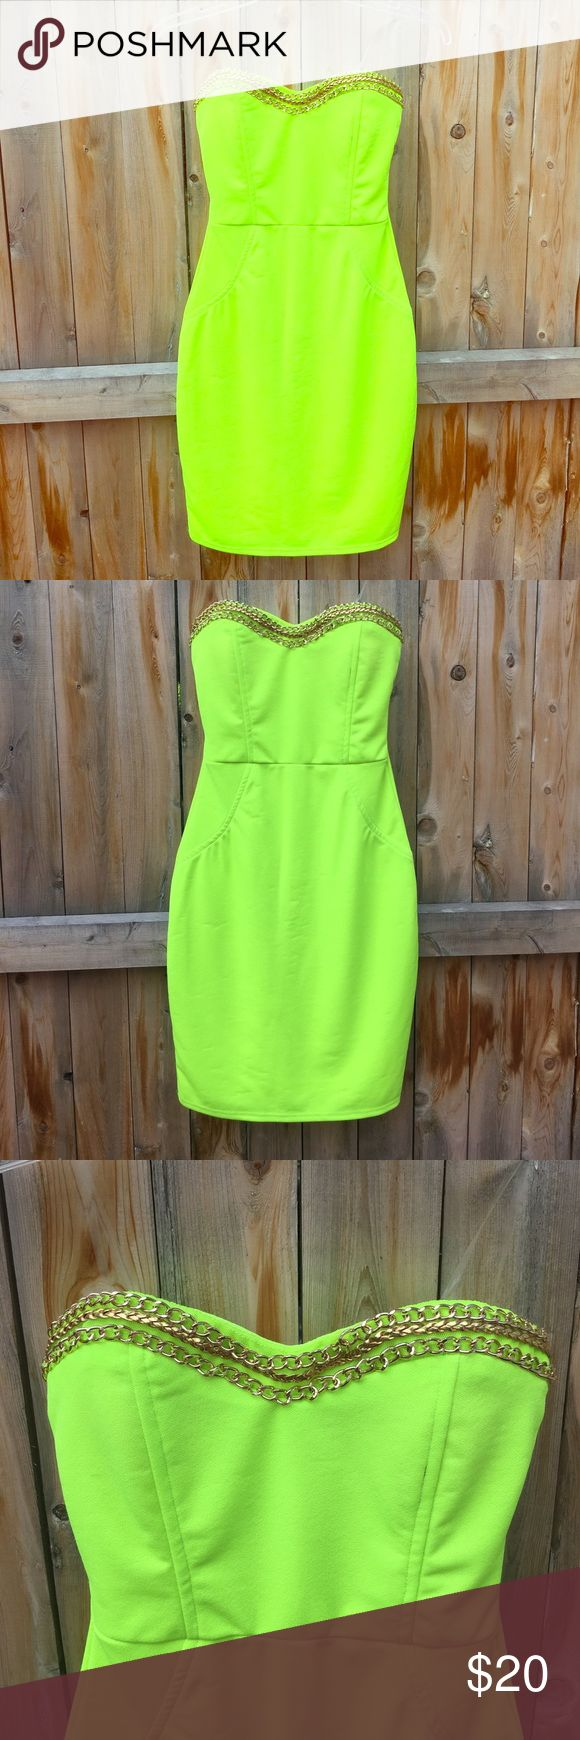 NWT Lime Green Dress 🍏 Beautiful bright neon green sweet heart dress. Size small with tags! Exactly as pictured. No flaws. Dresses Midi